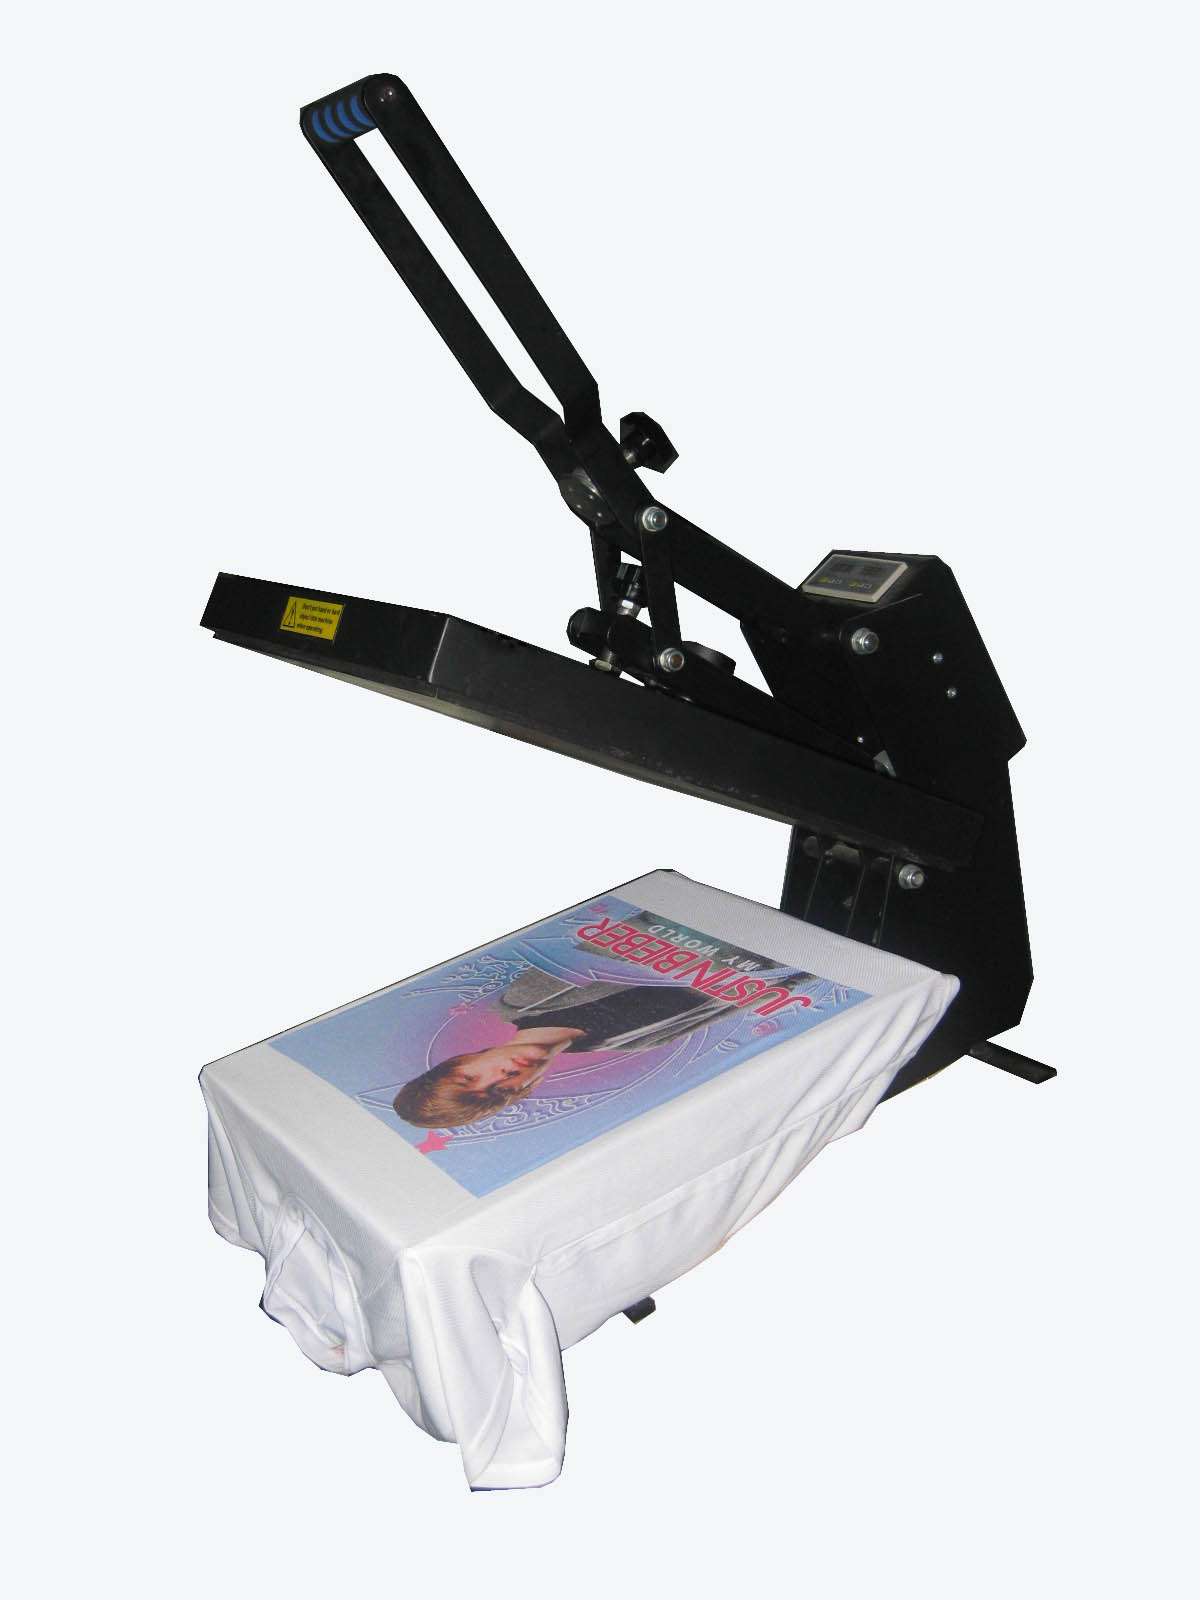 Heat press machine for t shirt at 90k 38 38 art for Machine for printing on t shirts